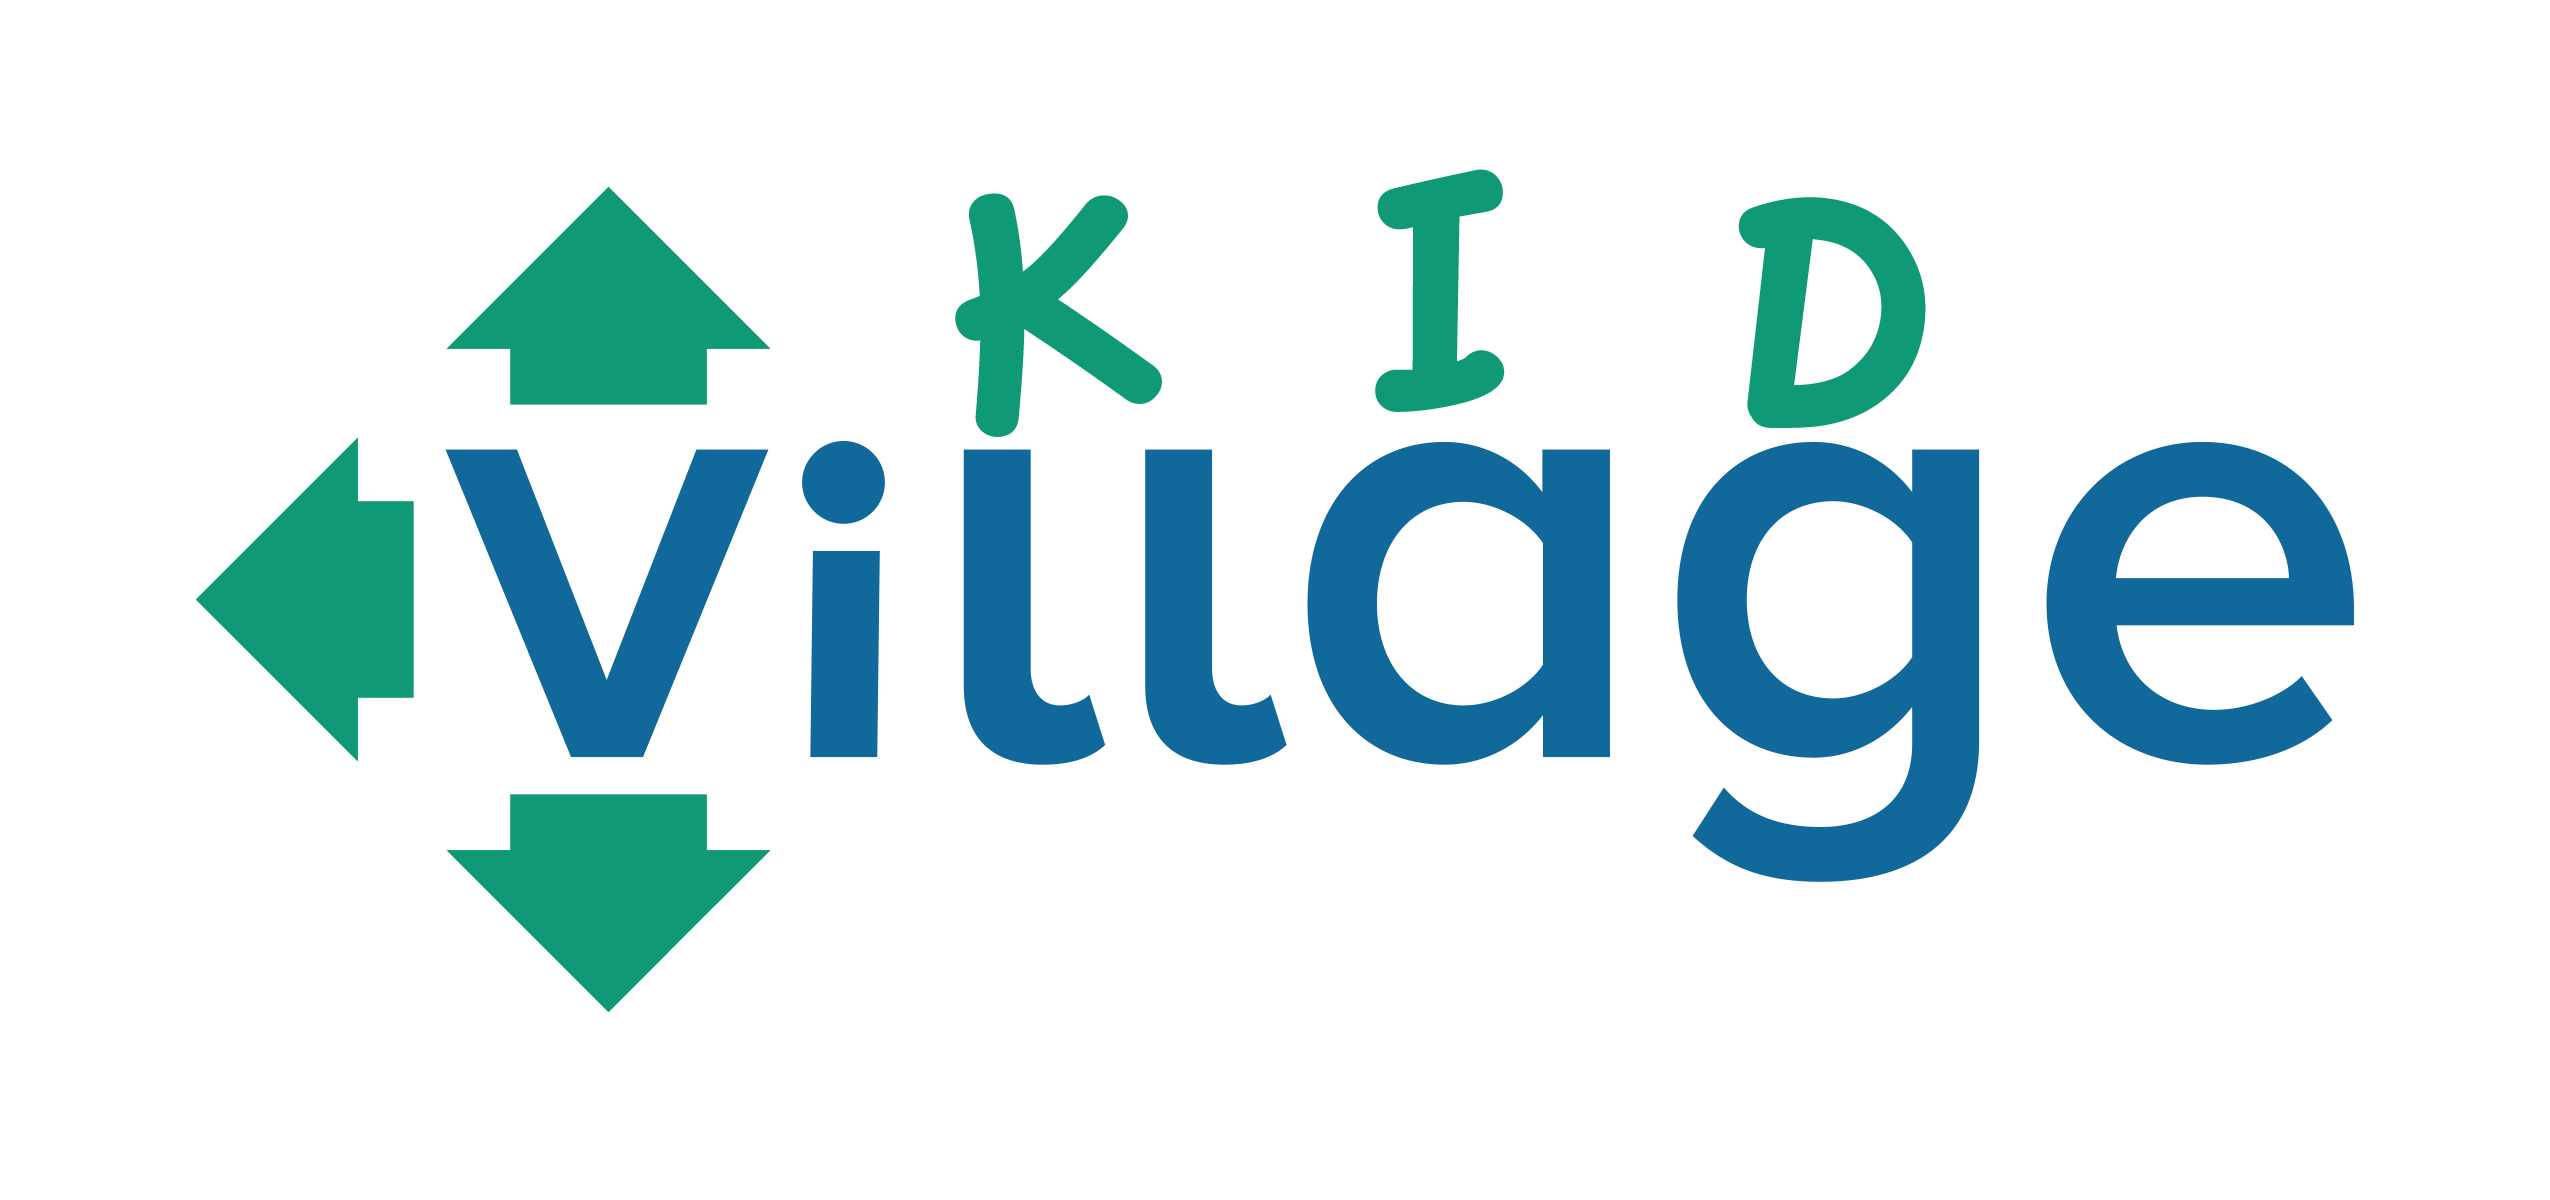 Kid Village at The Village Christian Church in MInooka,Illinois